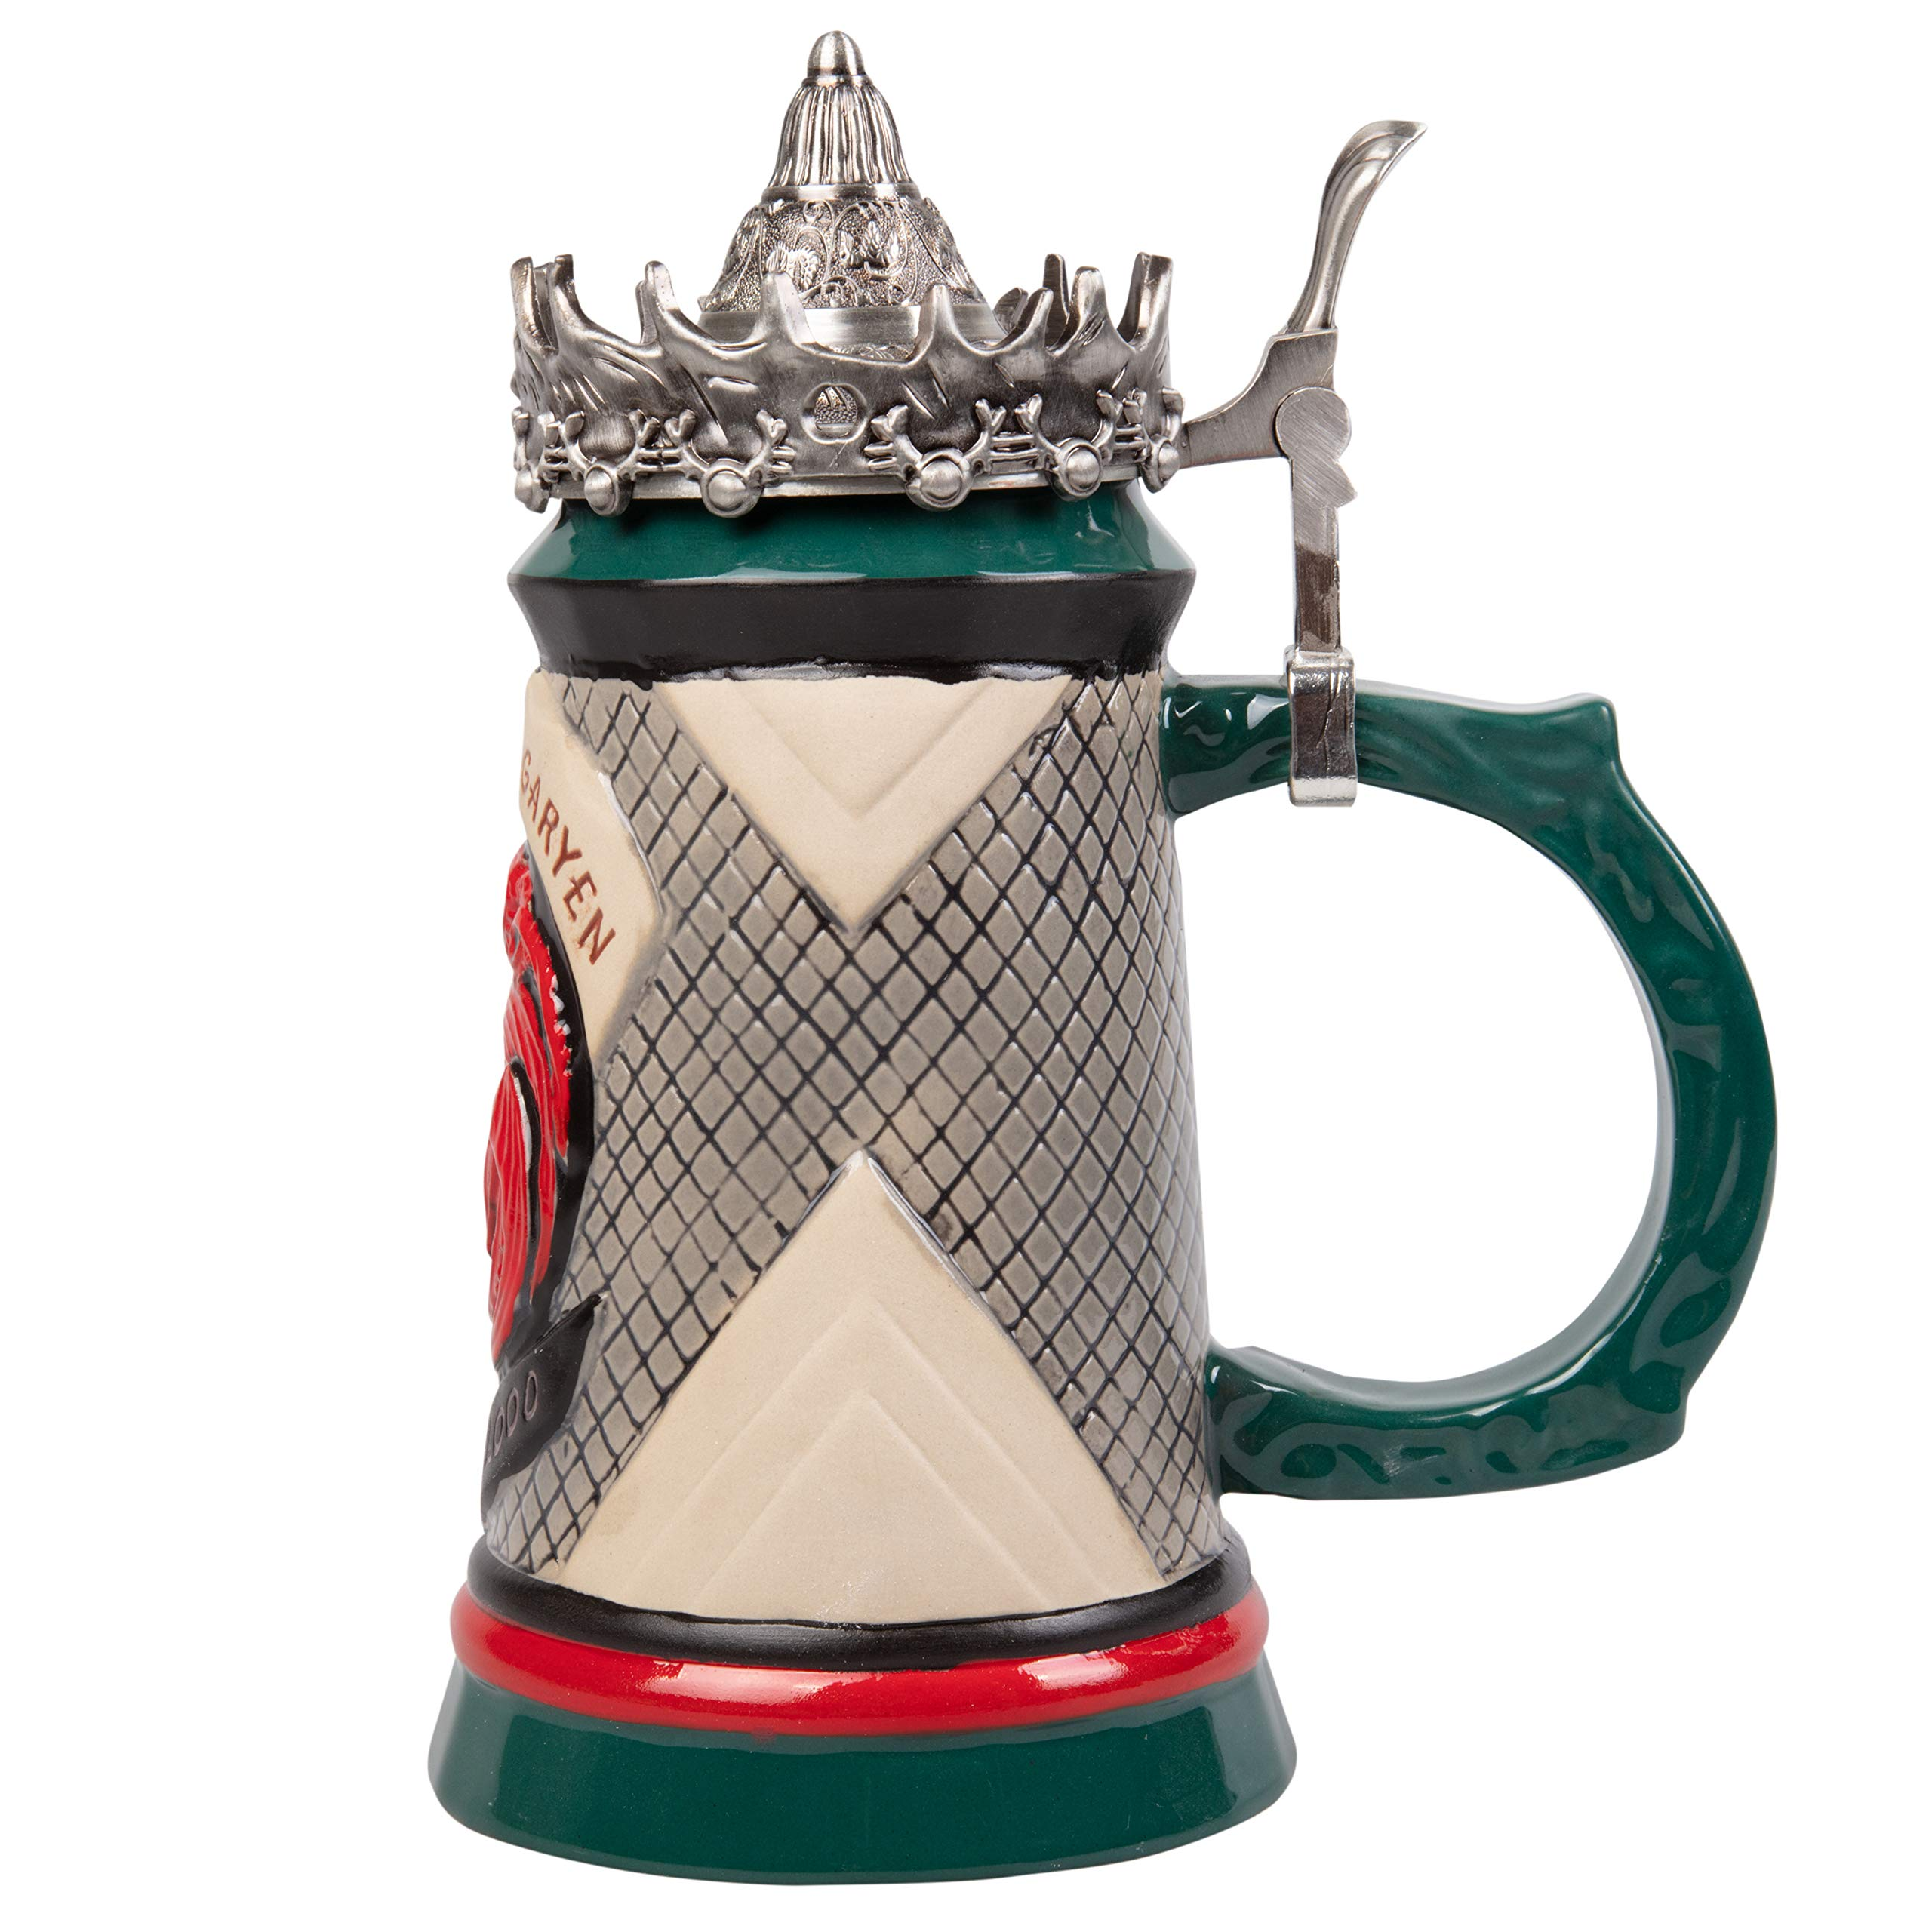 Game of Thrones House Targaryen Stein - 22 Oz Ceramic Base with Pewter Baratheon Crown Top by Game of Thrones (Image #3)